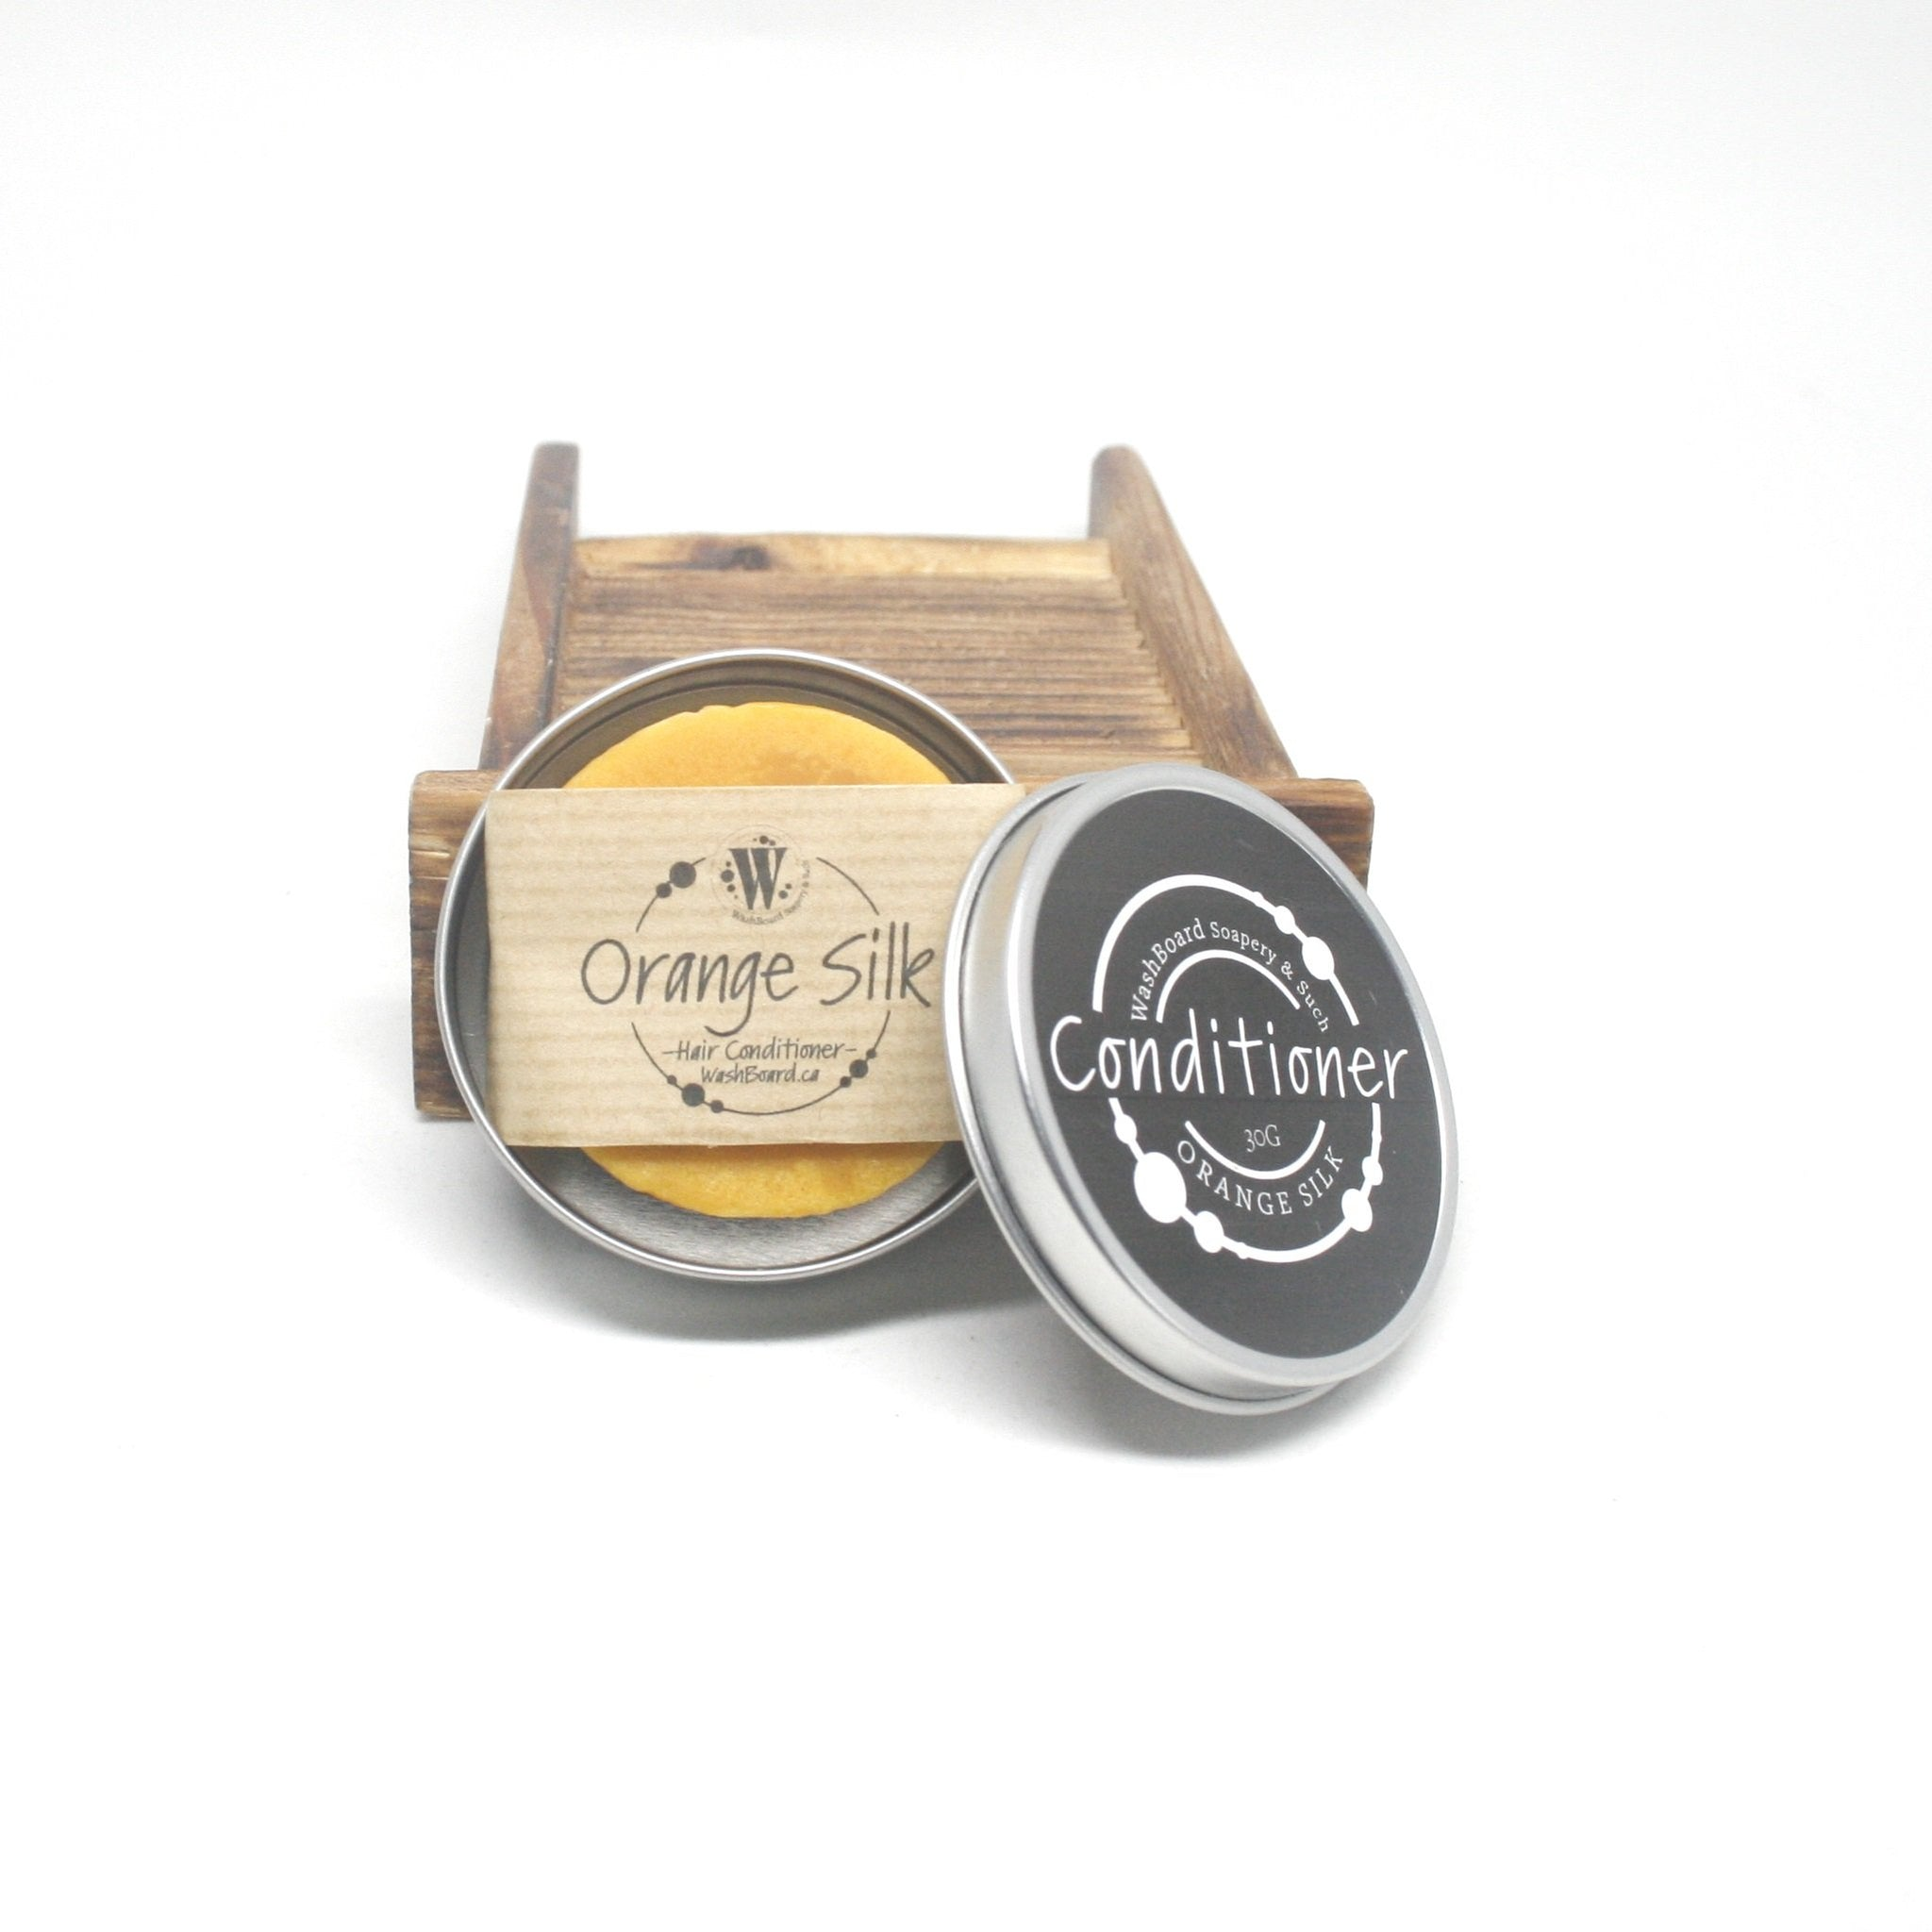 Orange Silk Hair Conditioner Bar in Travel Tin